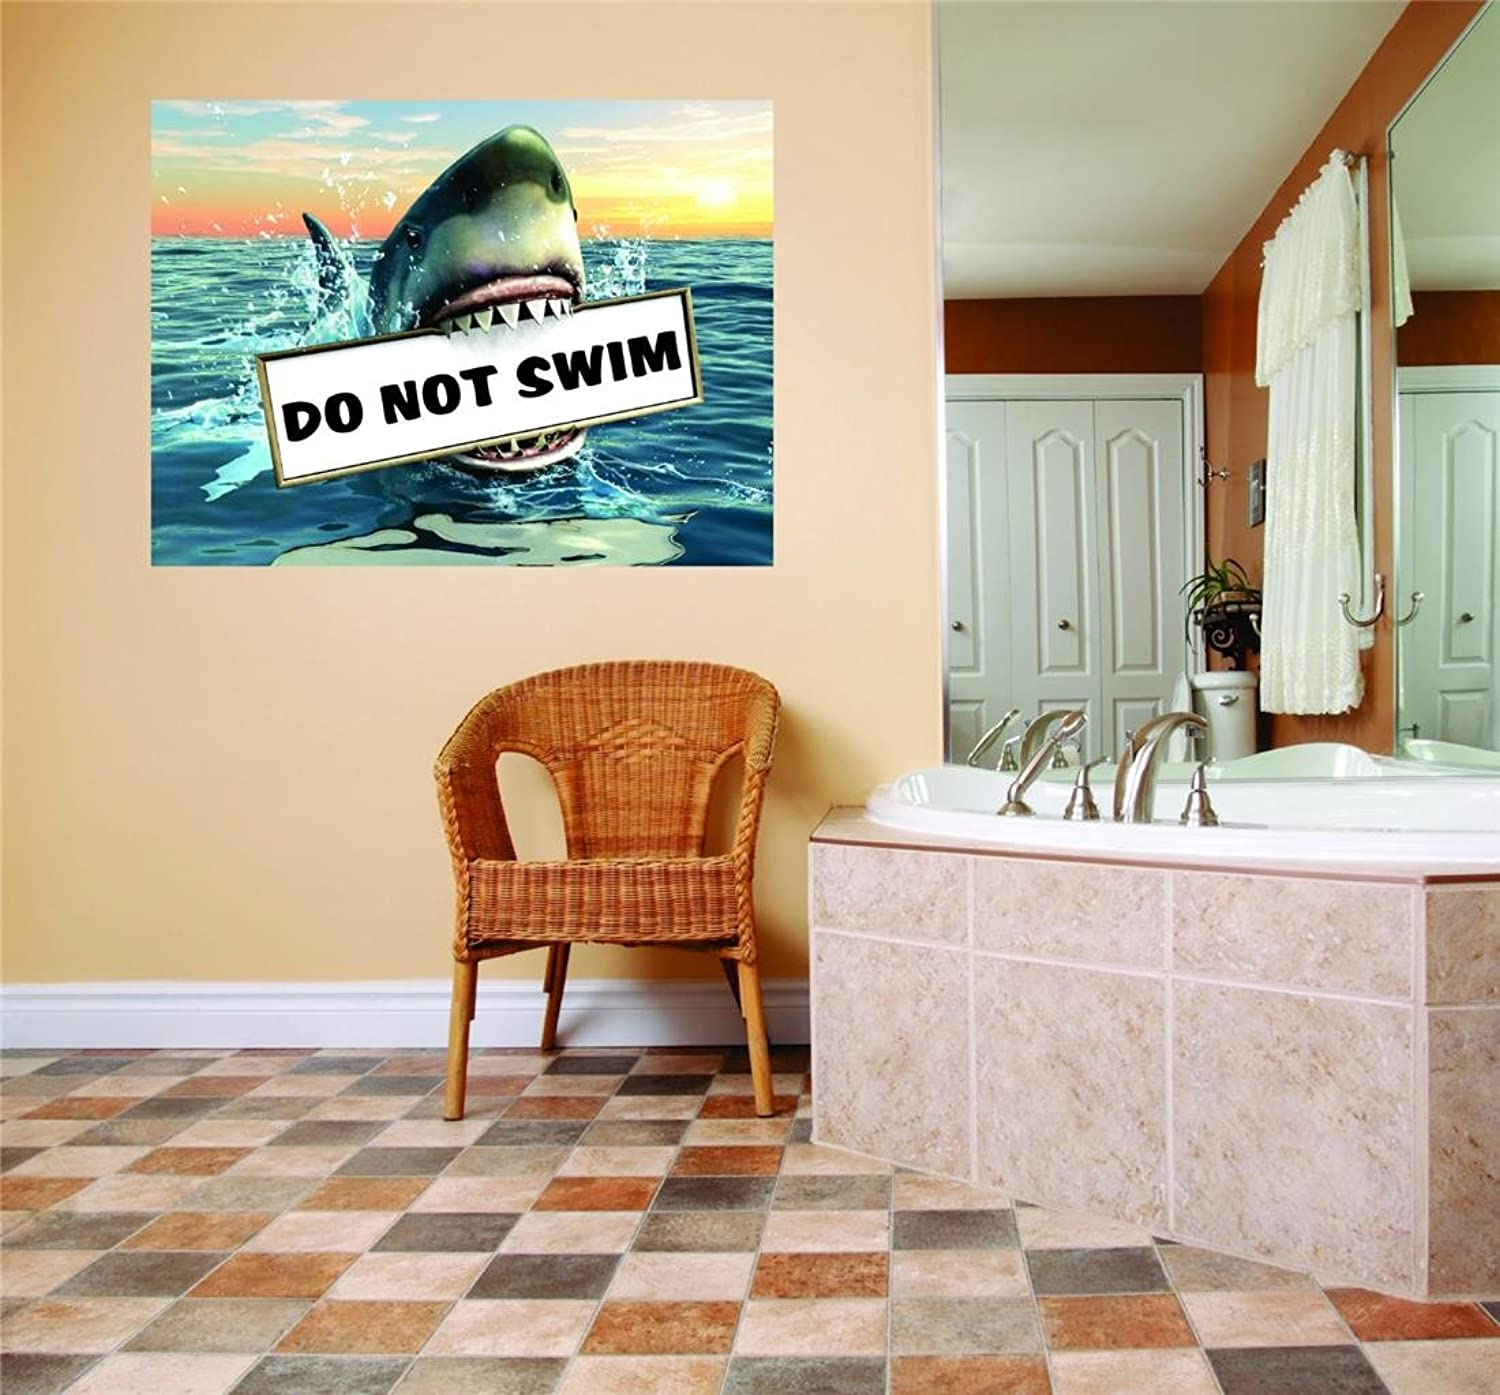 Do Not swim shark teeth Pool water warning sign Home Decor Picture Art Image Mural Peel & Stick Sticker Vinyl Wall  Best Selling Cling Transfer Decal color 582Size   30 Inches X 44 Inches  22 colors Available